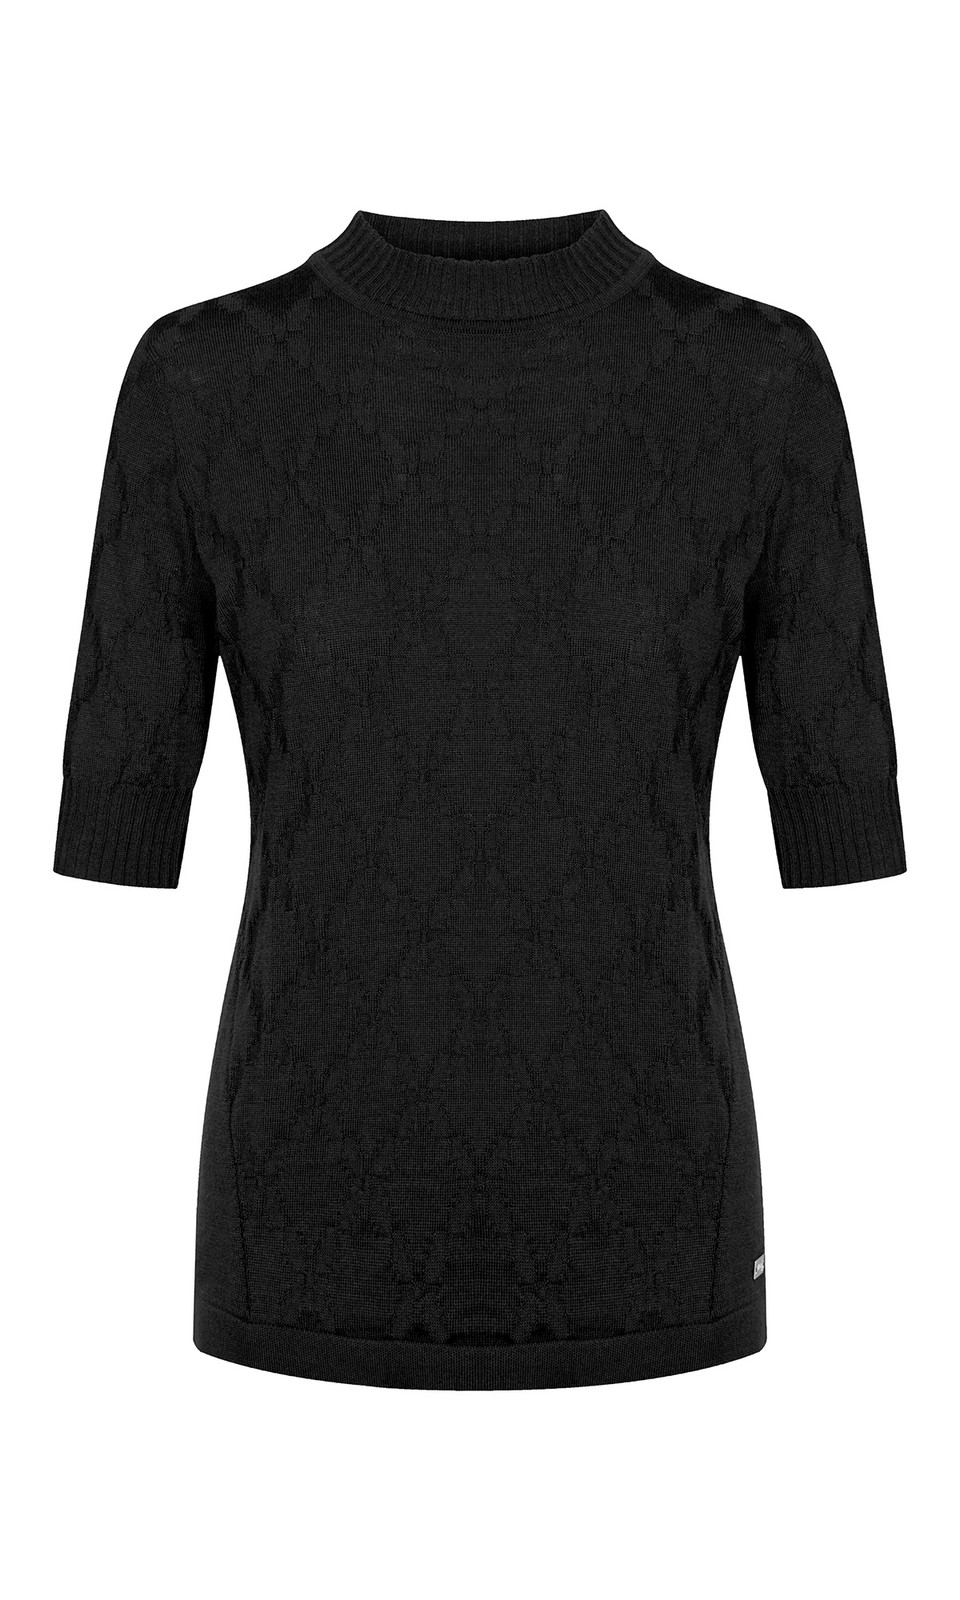 Dale of Norway Lilly Top, Ladies - Black, 94321-F (94321-F)